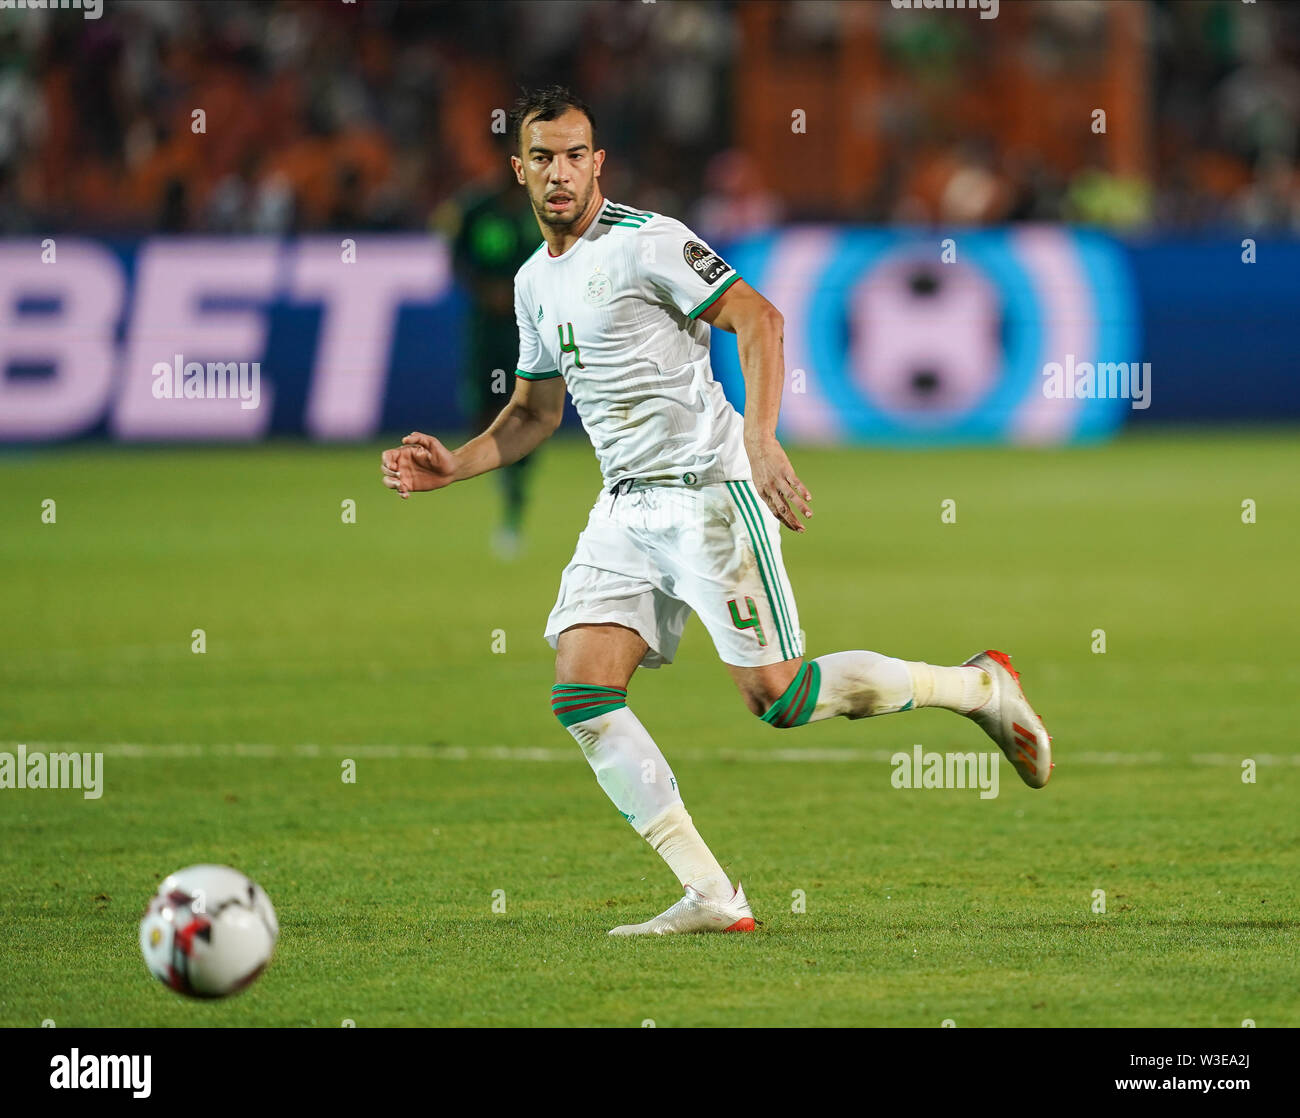 July 14, 2019 - Cairo, Algeria, Egypt - FRANCE OUT July 14, 2019: Djamel Eddine Benlamri of Algeria during the 2019 African Cup of Nations match between Algeria and Nigeria at the Cairo International Stadium in Cairo, Egypt. Ulrik Pedersen/CSM. - Stock Image